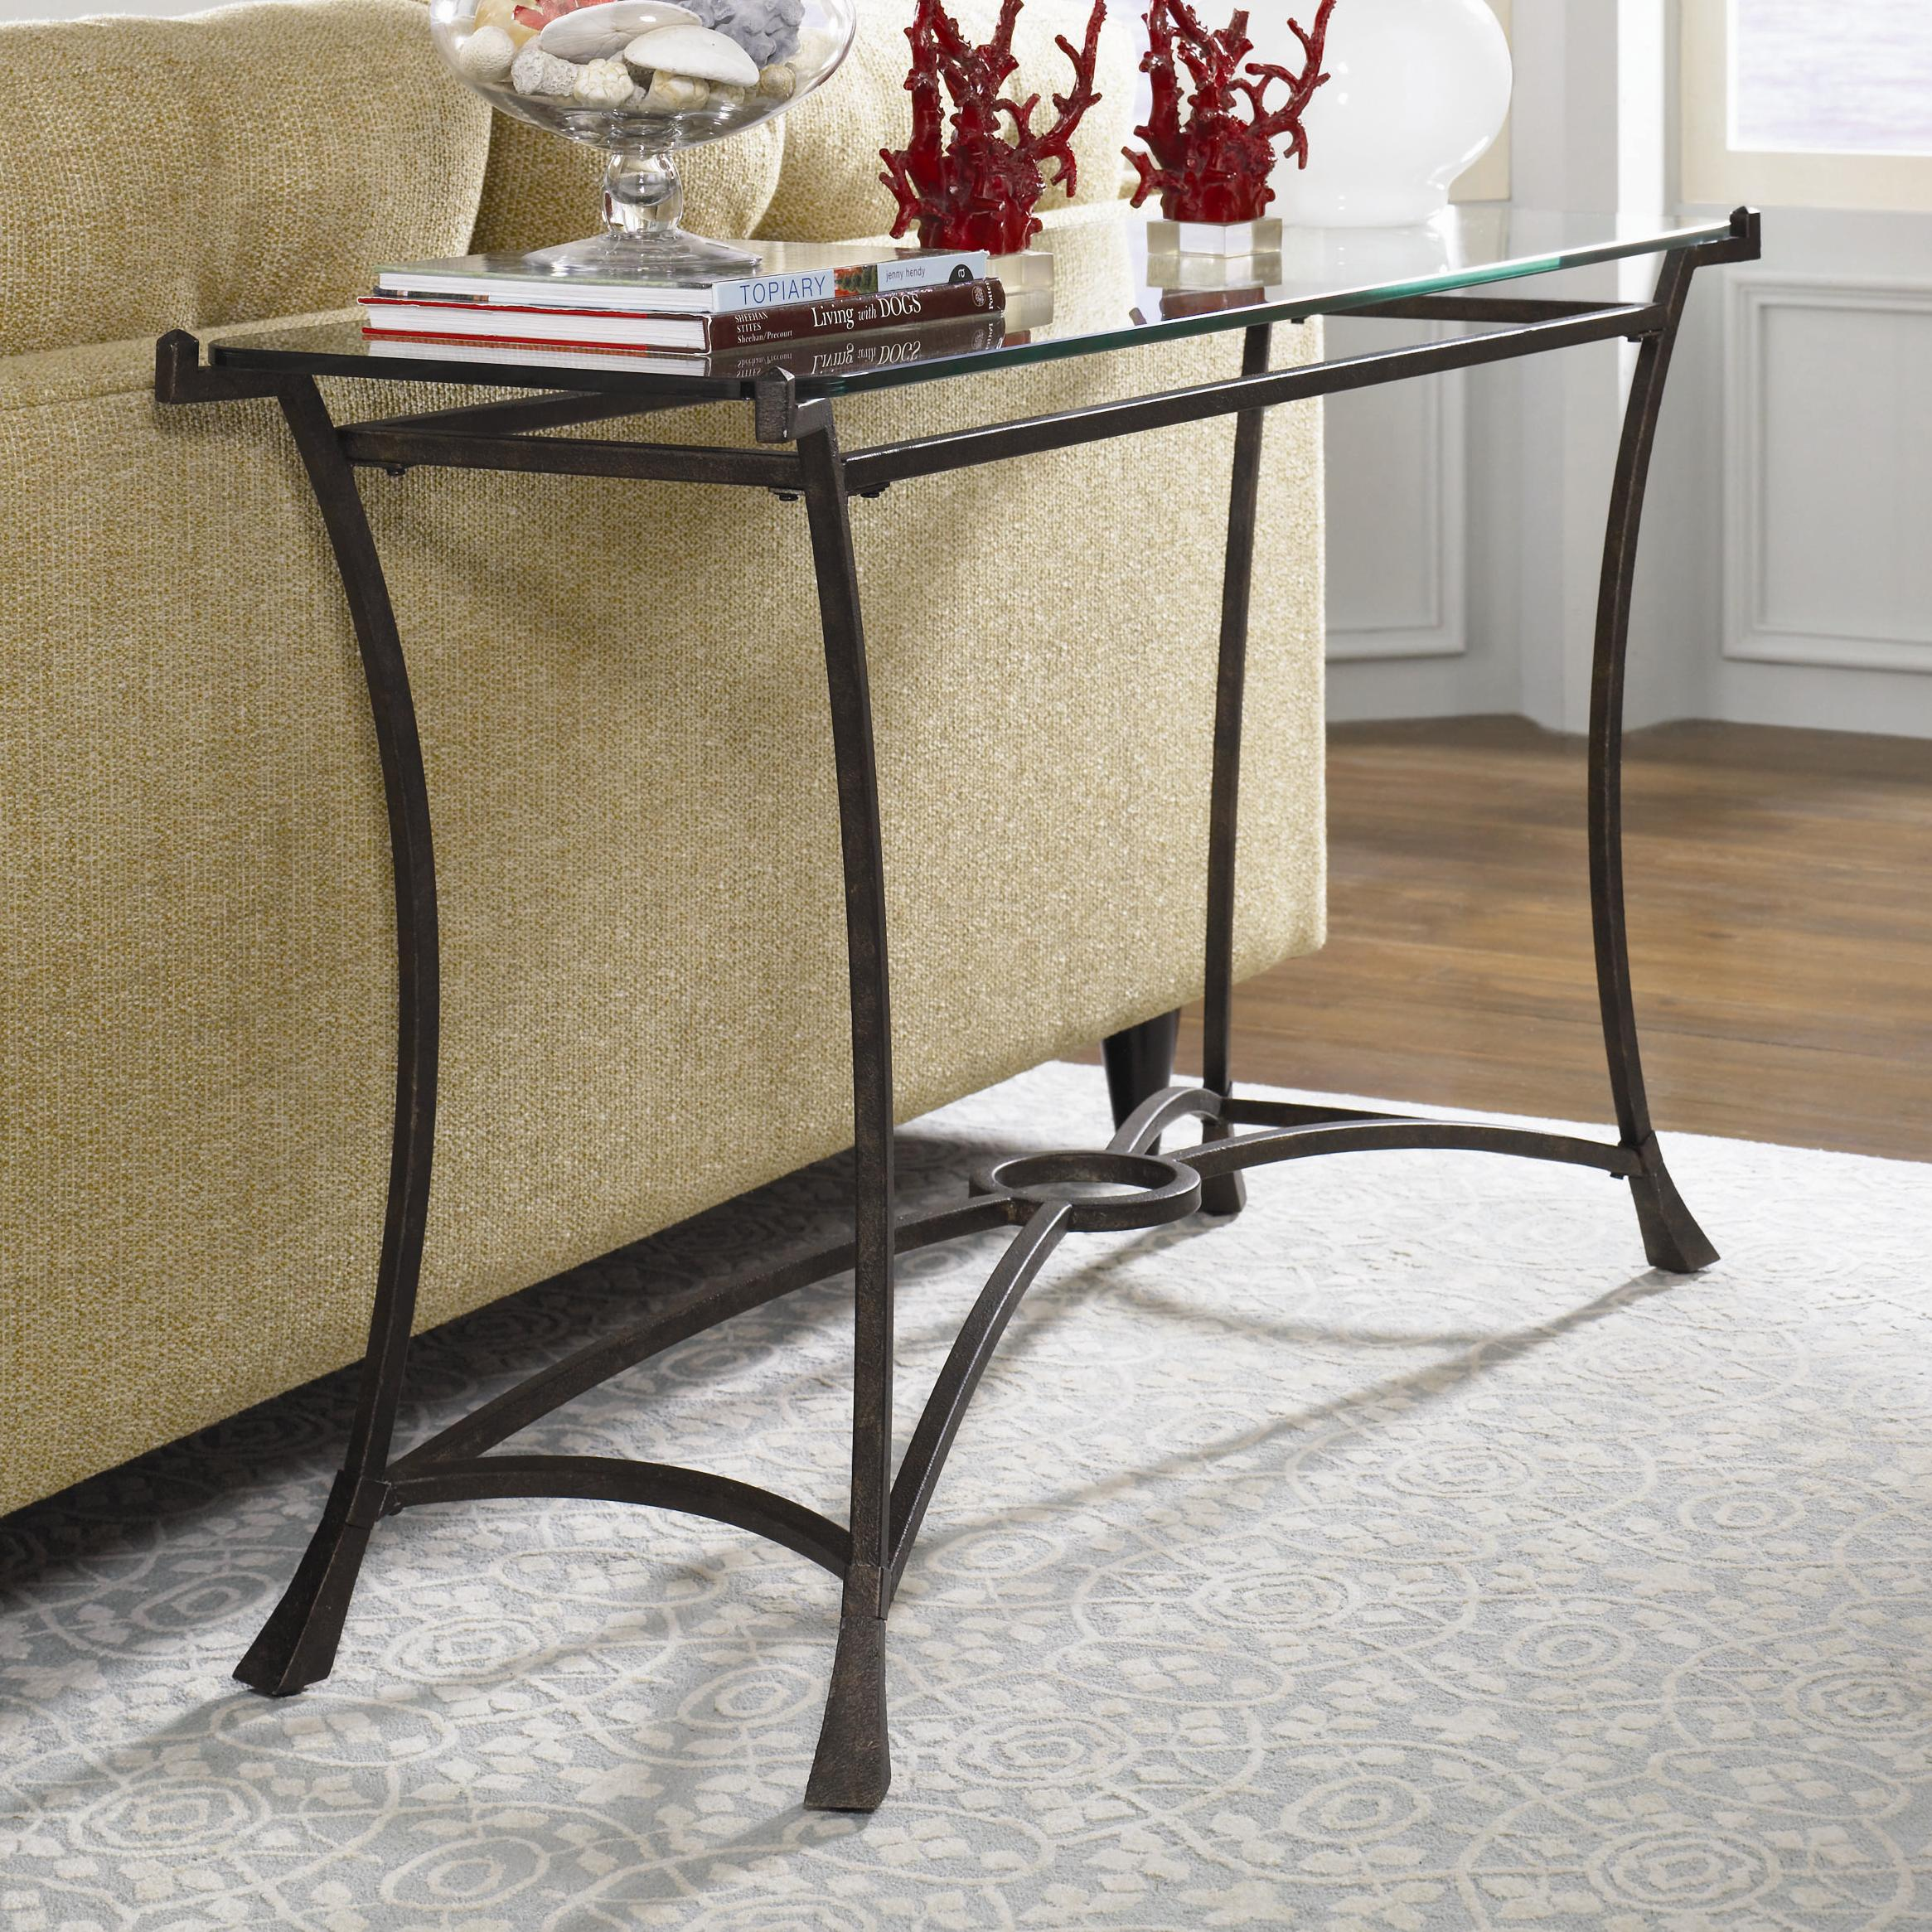 contemporary metal sofa table with glass top hammary wolf furniture products color sutton narrow end kmart kids swing set carpet placement living room whalen oak desk home tables